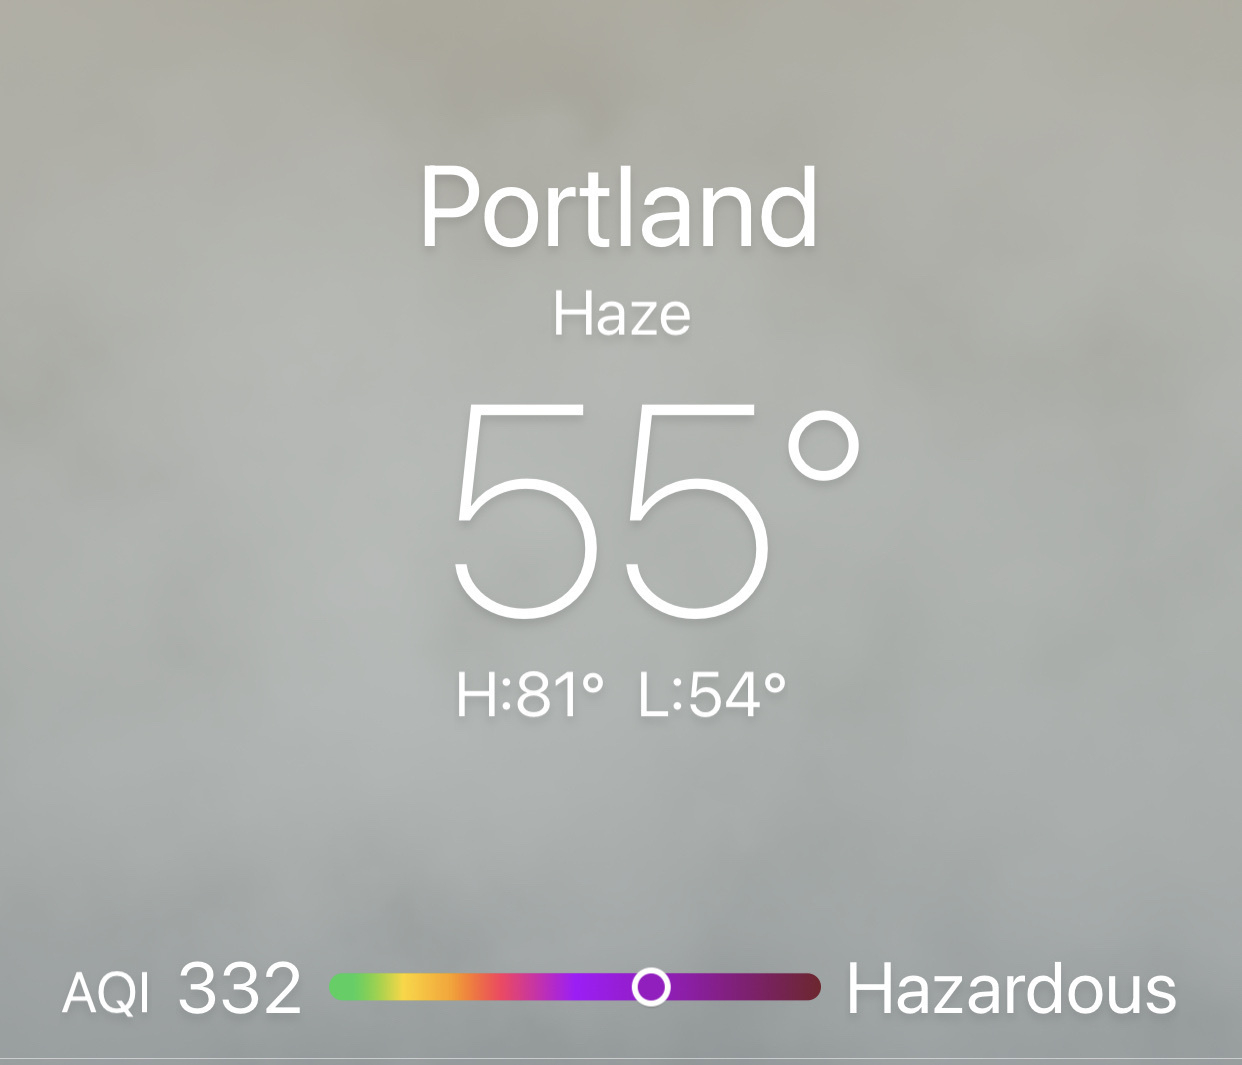 Screenshot of weather app showing AQI of 332 (hazardous).